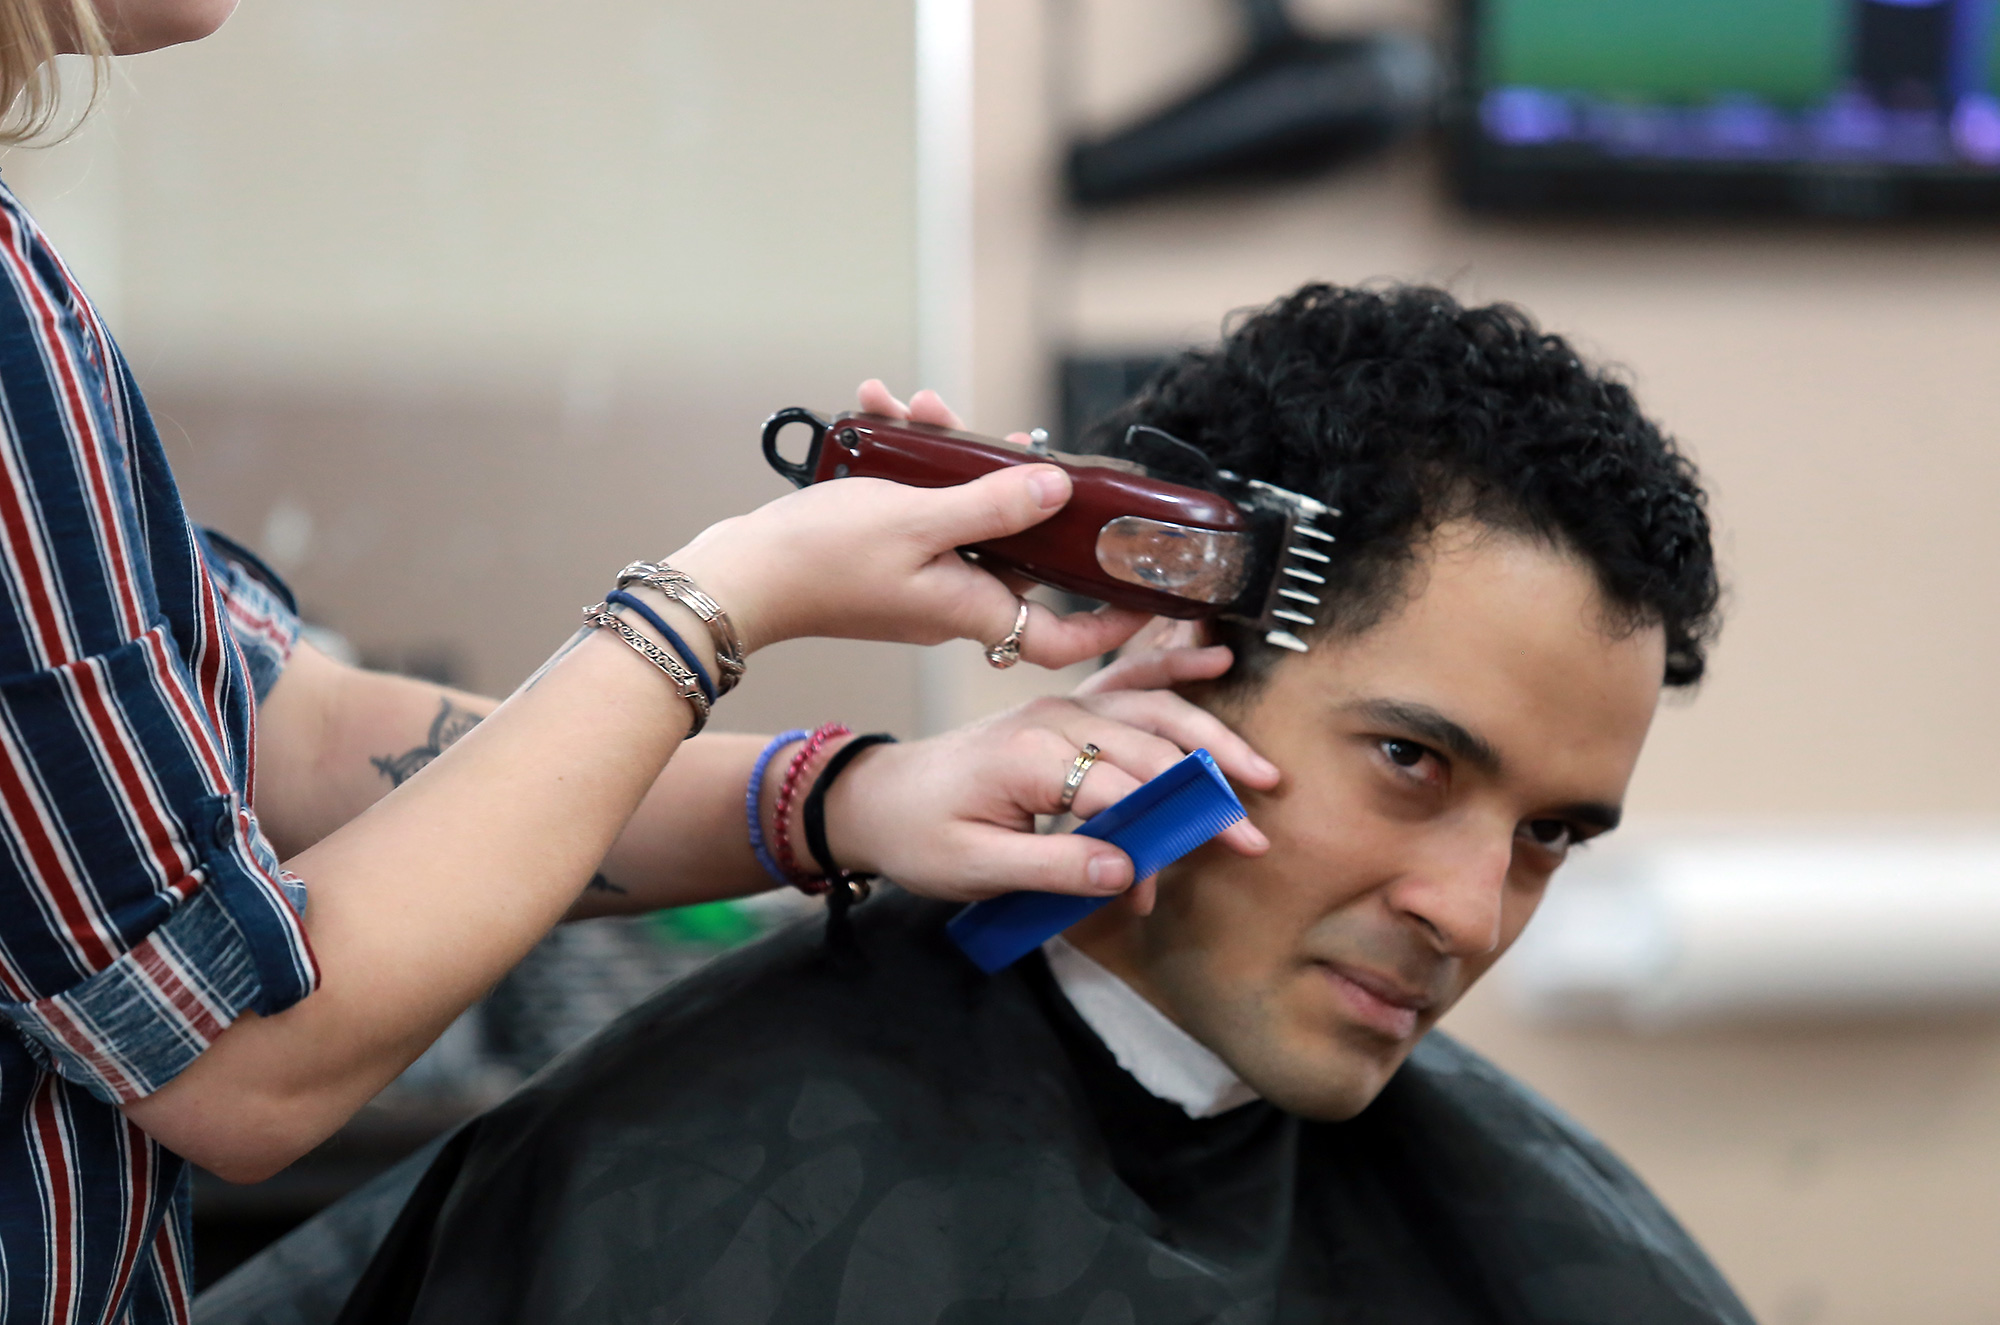 Our Restricted Barber program provides training in everything from precision haircutting, color and texture to skincare, shaving and grooming.